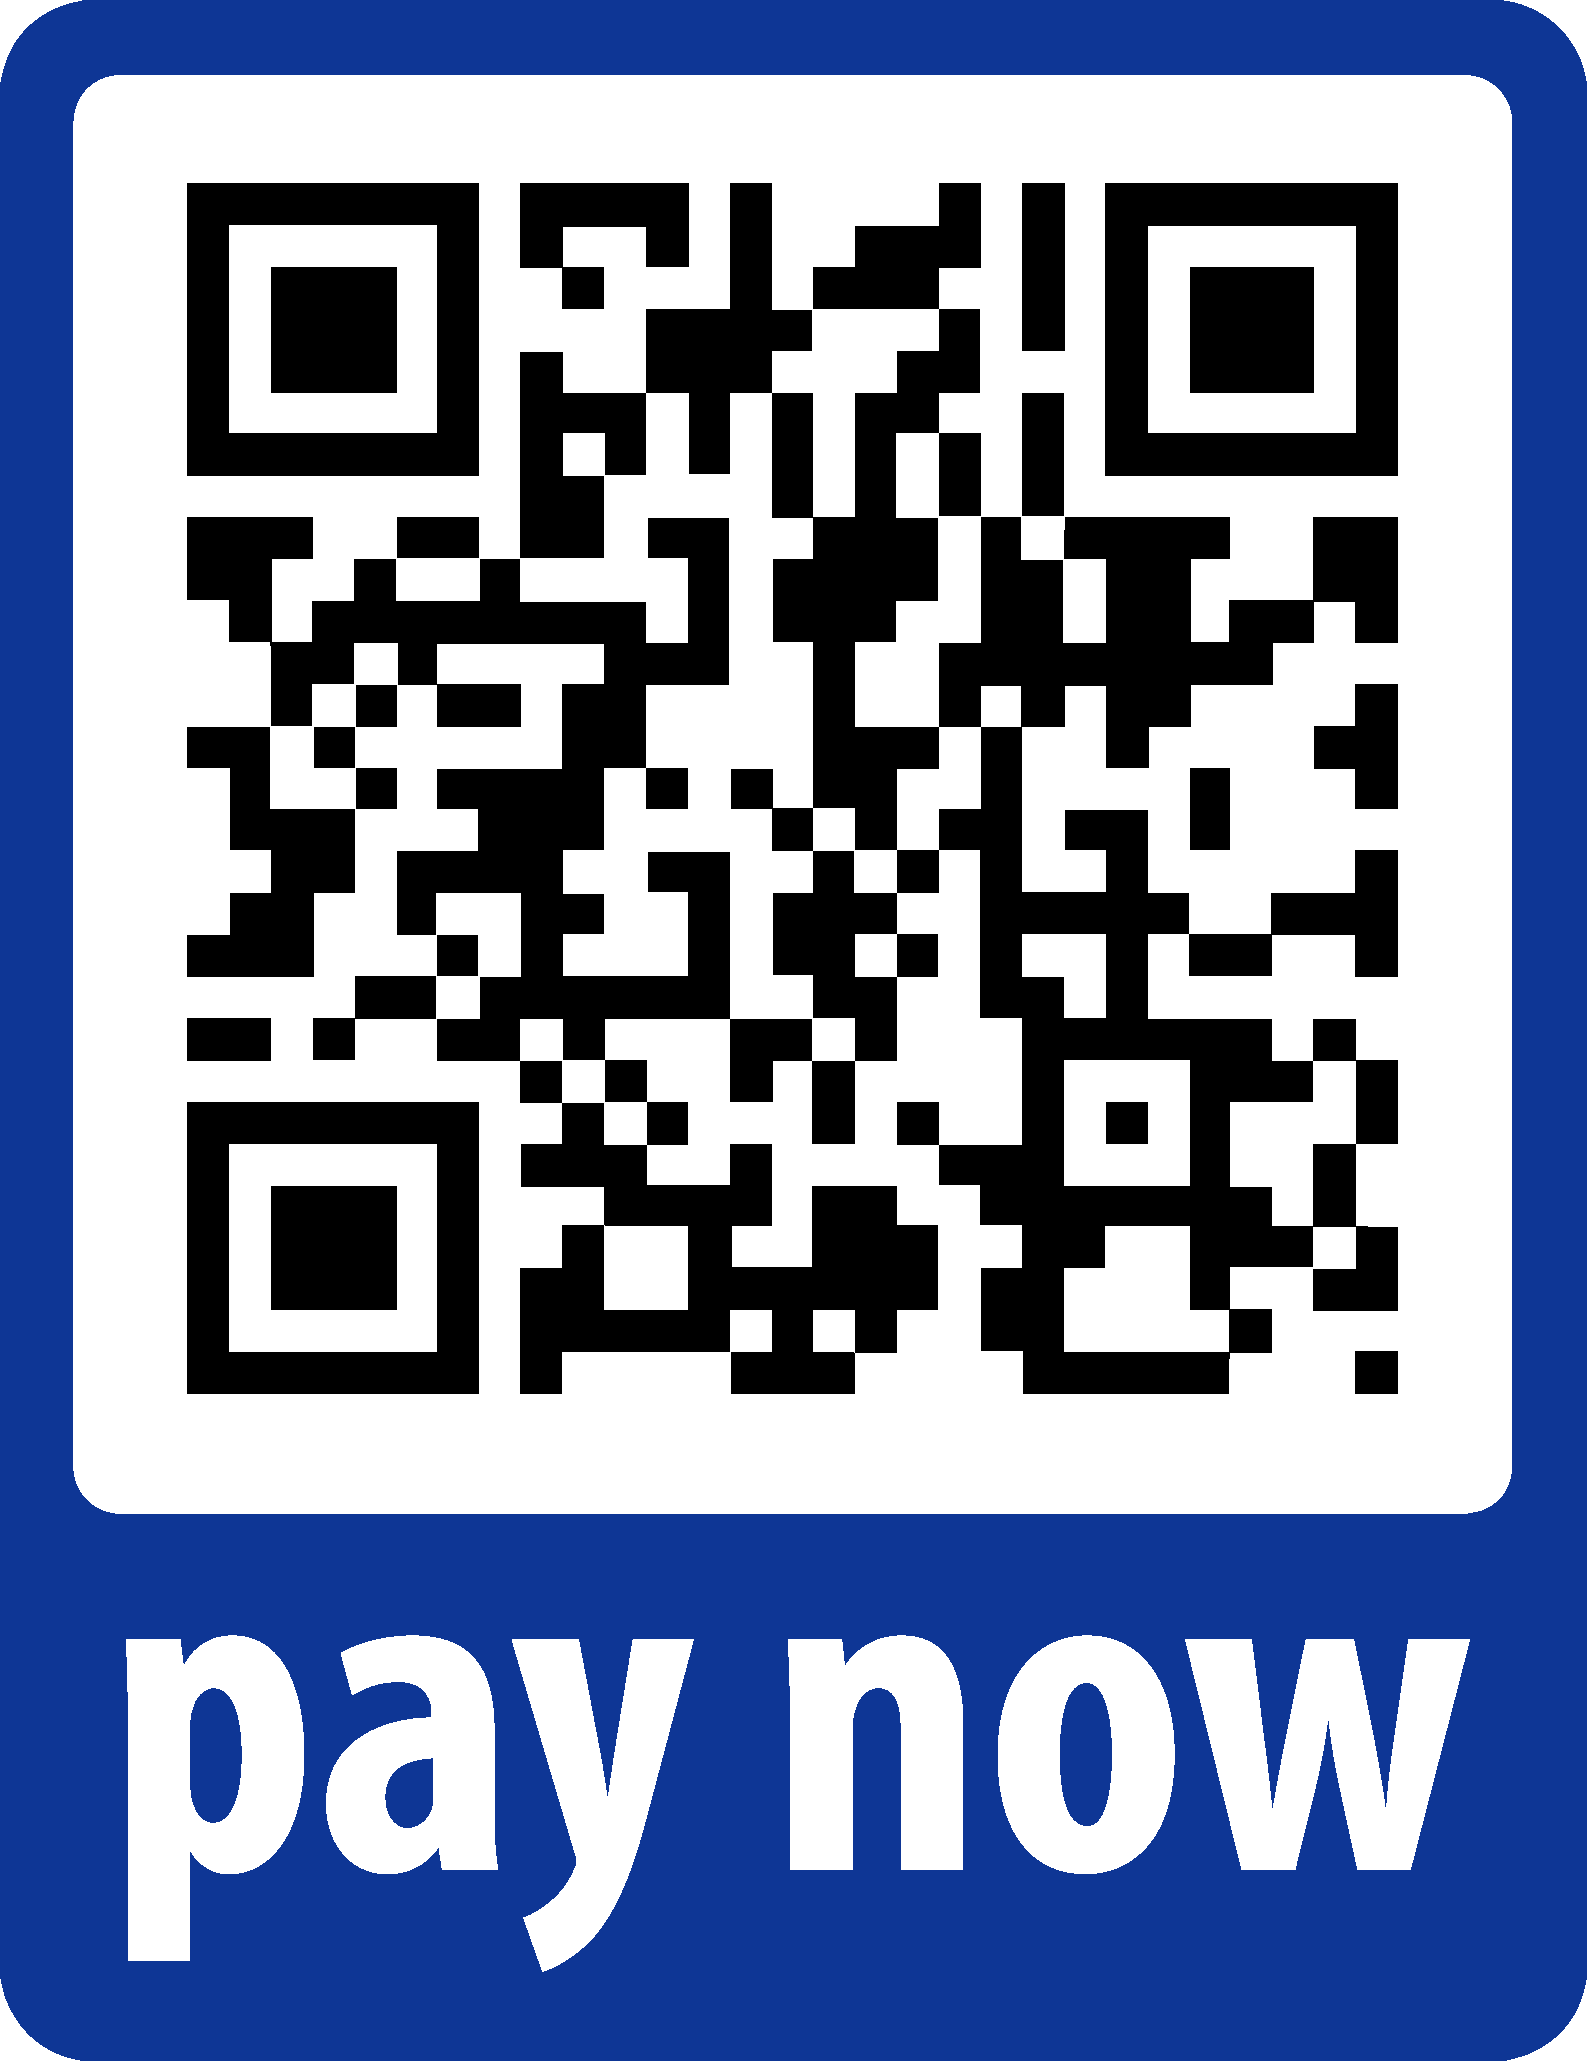 QR Code Image for tax payments